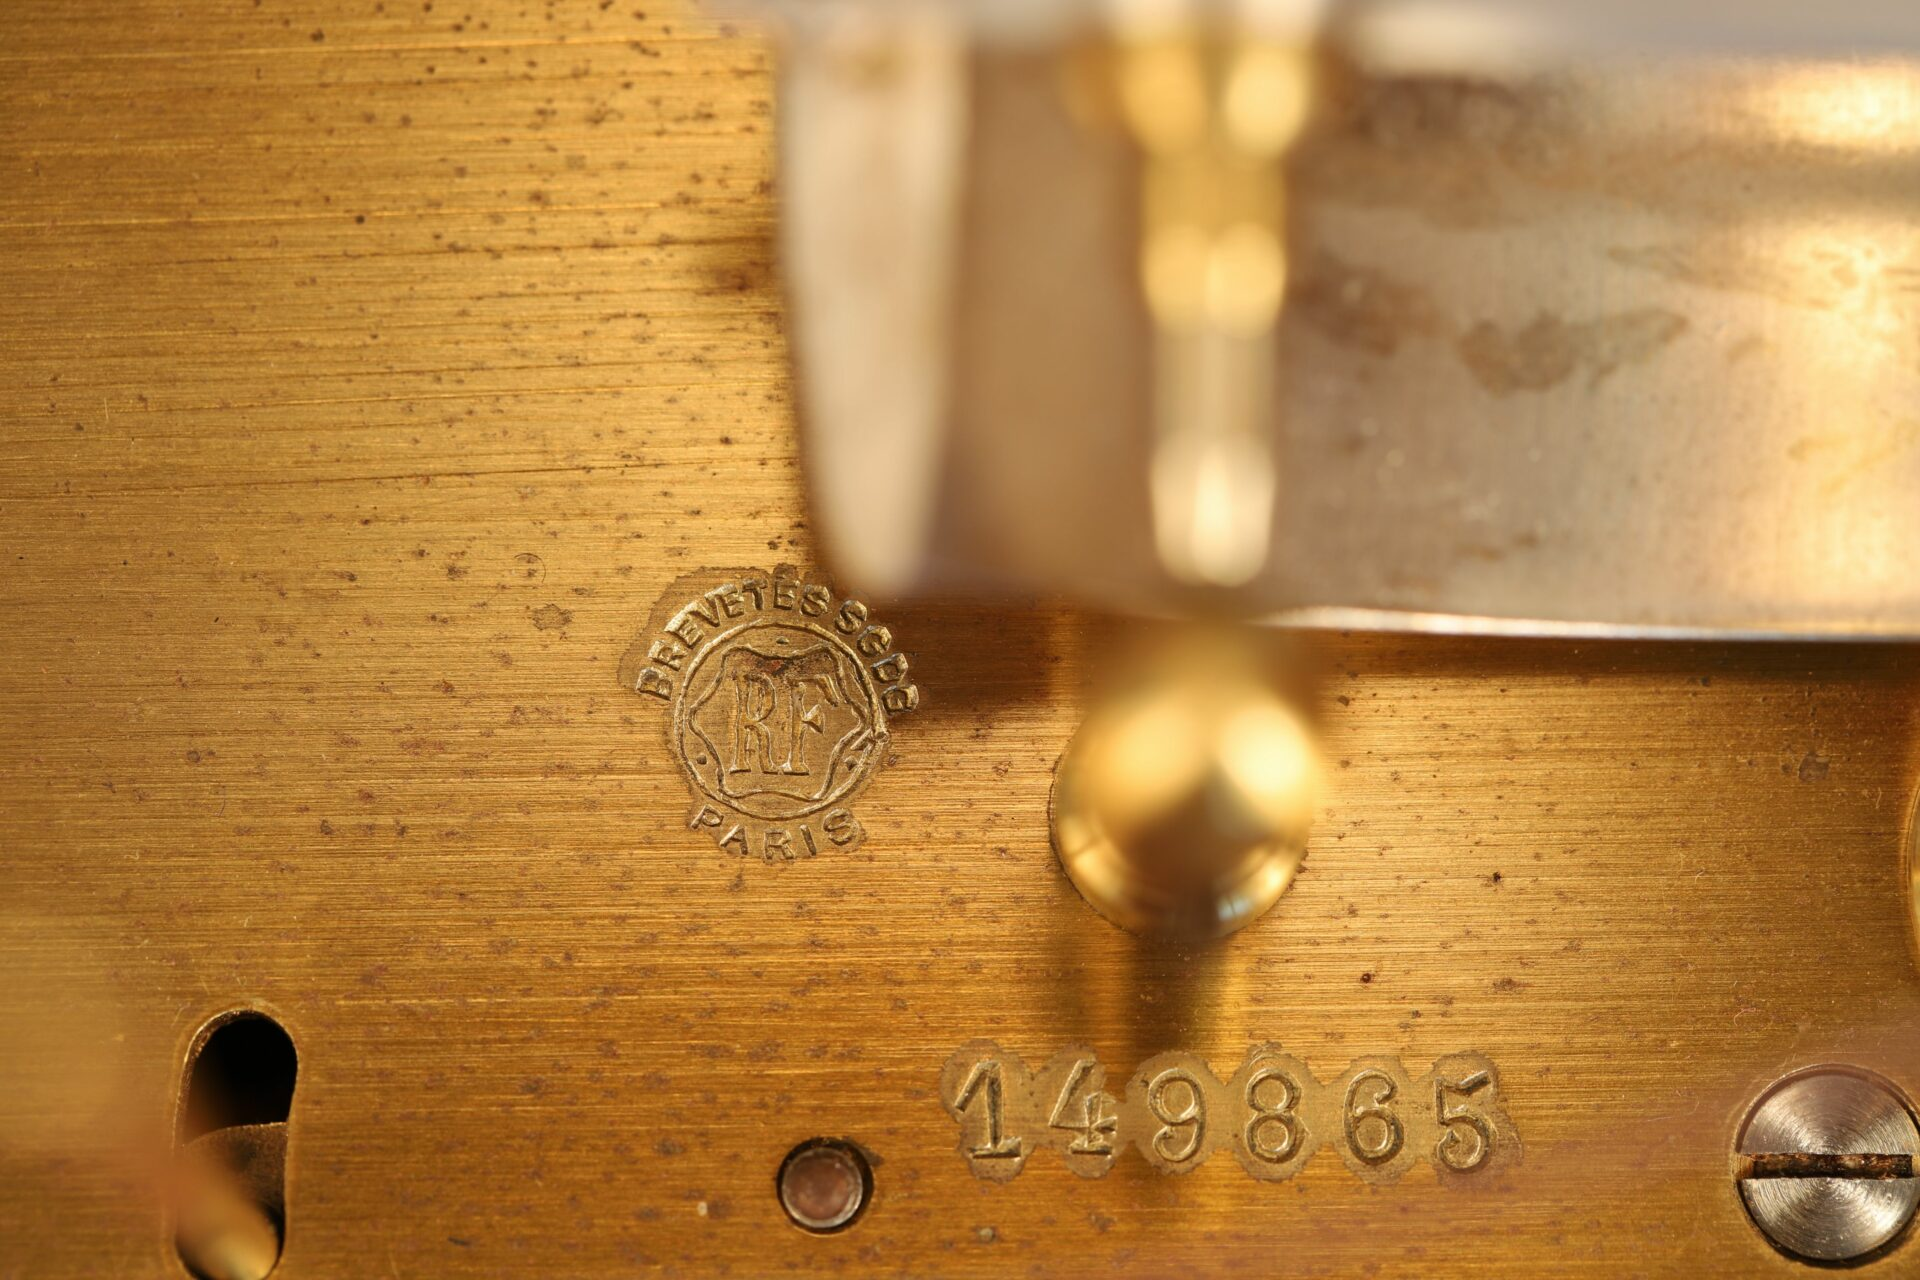 Image of maker's logo and serial number for Richard Frères Height Recorder No 149865